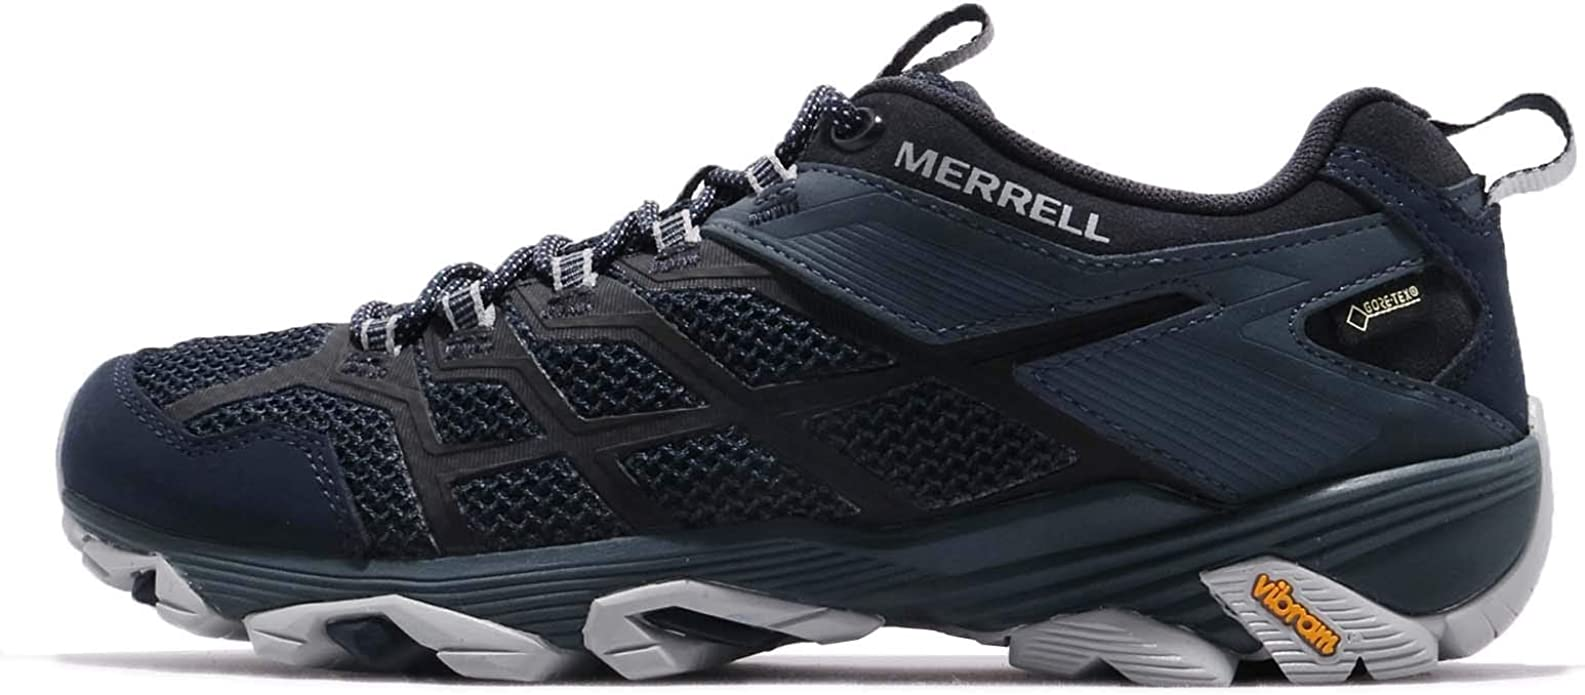 merrell mens moab fst 2 waterproof hiking shoe womens